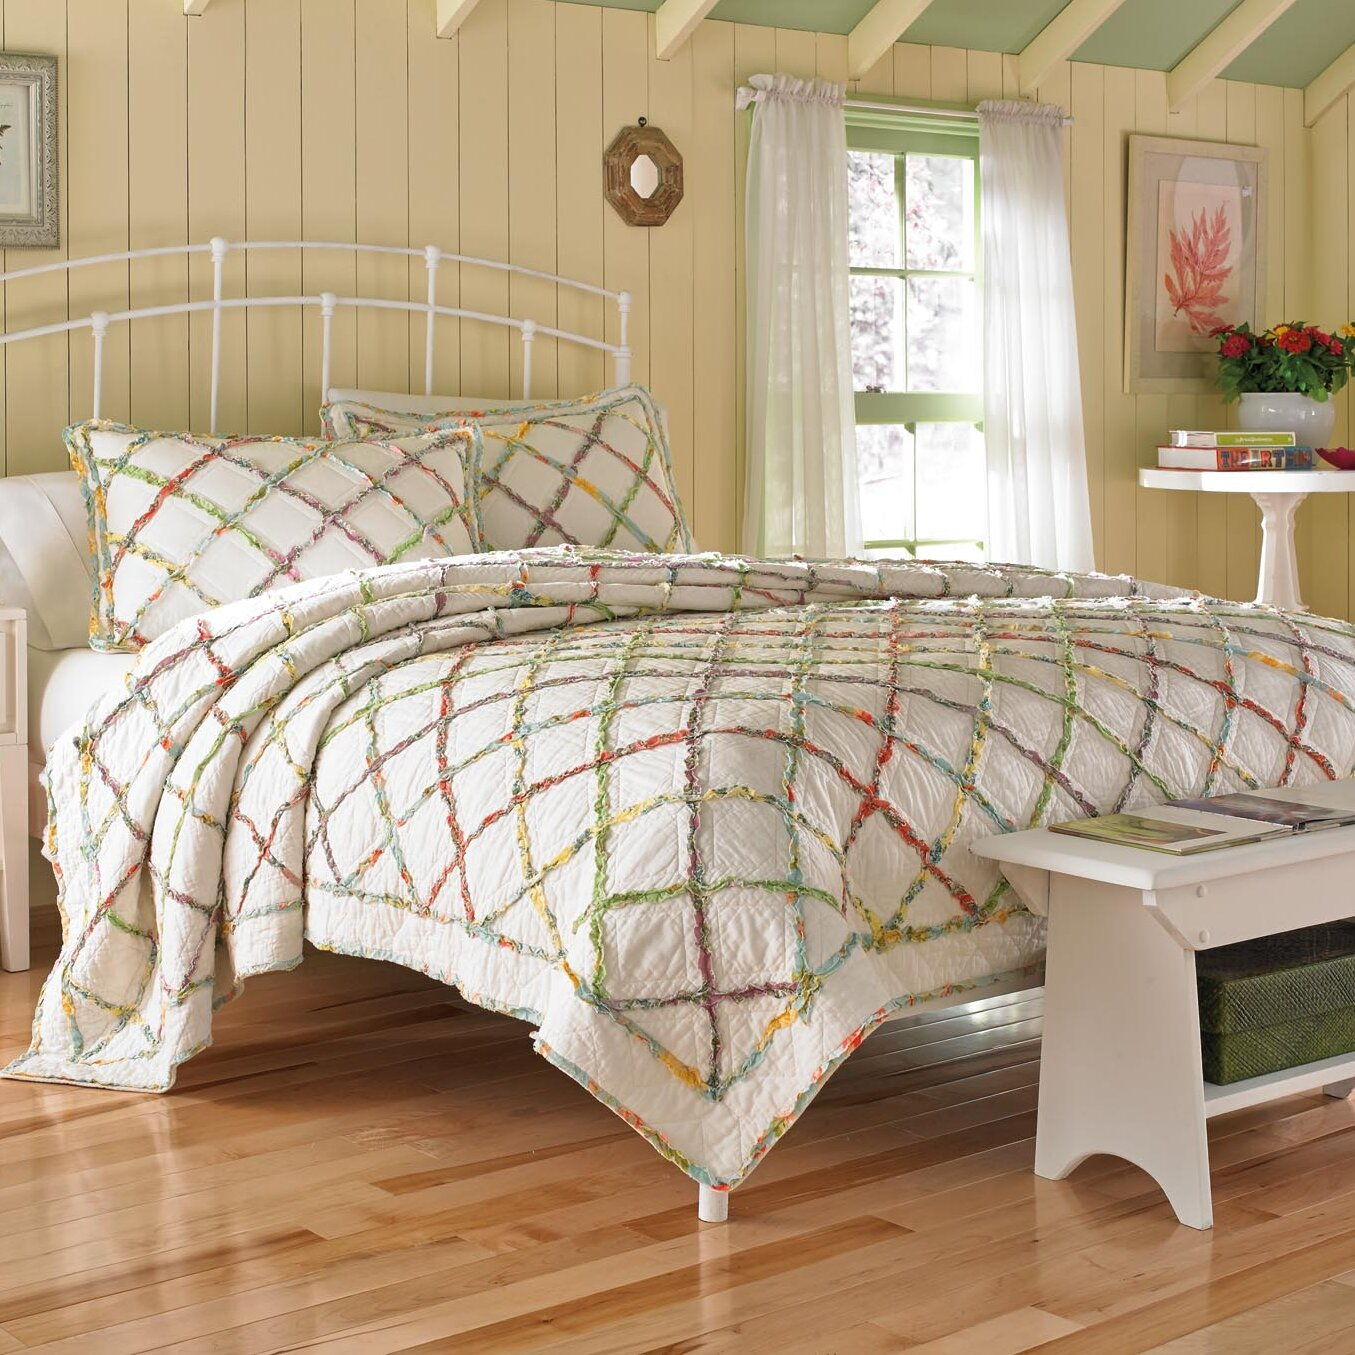 Laura Ashley Bedroom Furniture Ebay Laura Ashley Home Ruffled Garden Quilt Collection Reviews Wayfair